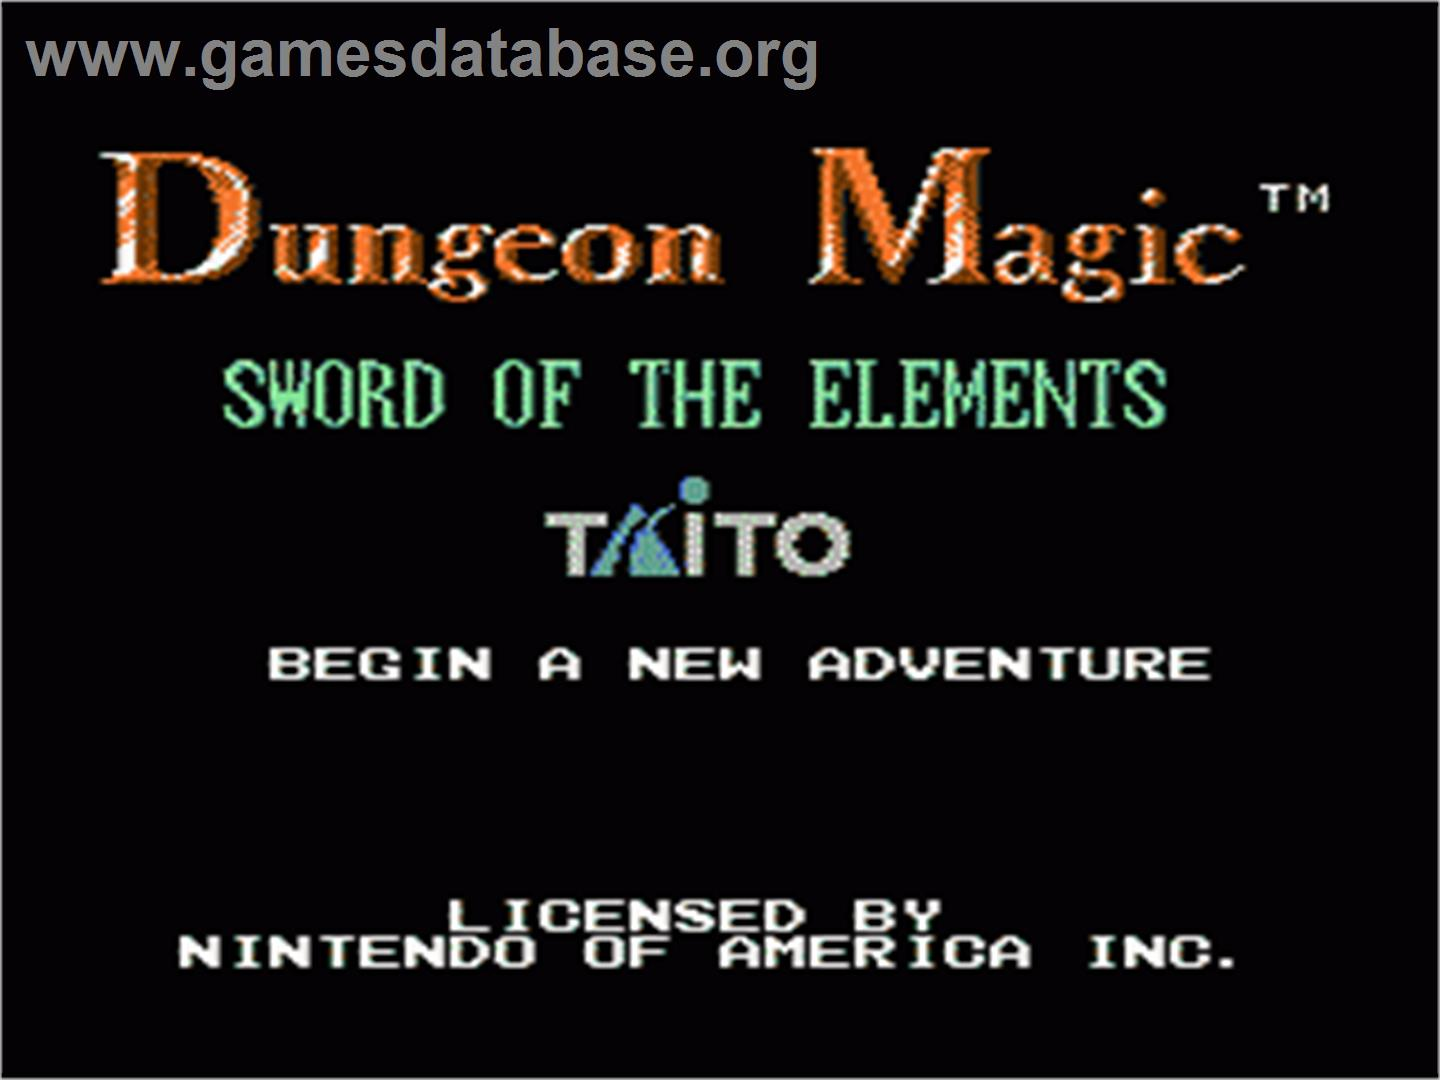 Dungeon Magic: Sword of the Elements - Nintendo NES - Artwork - Title Screen